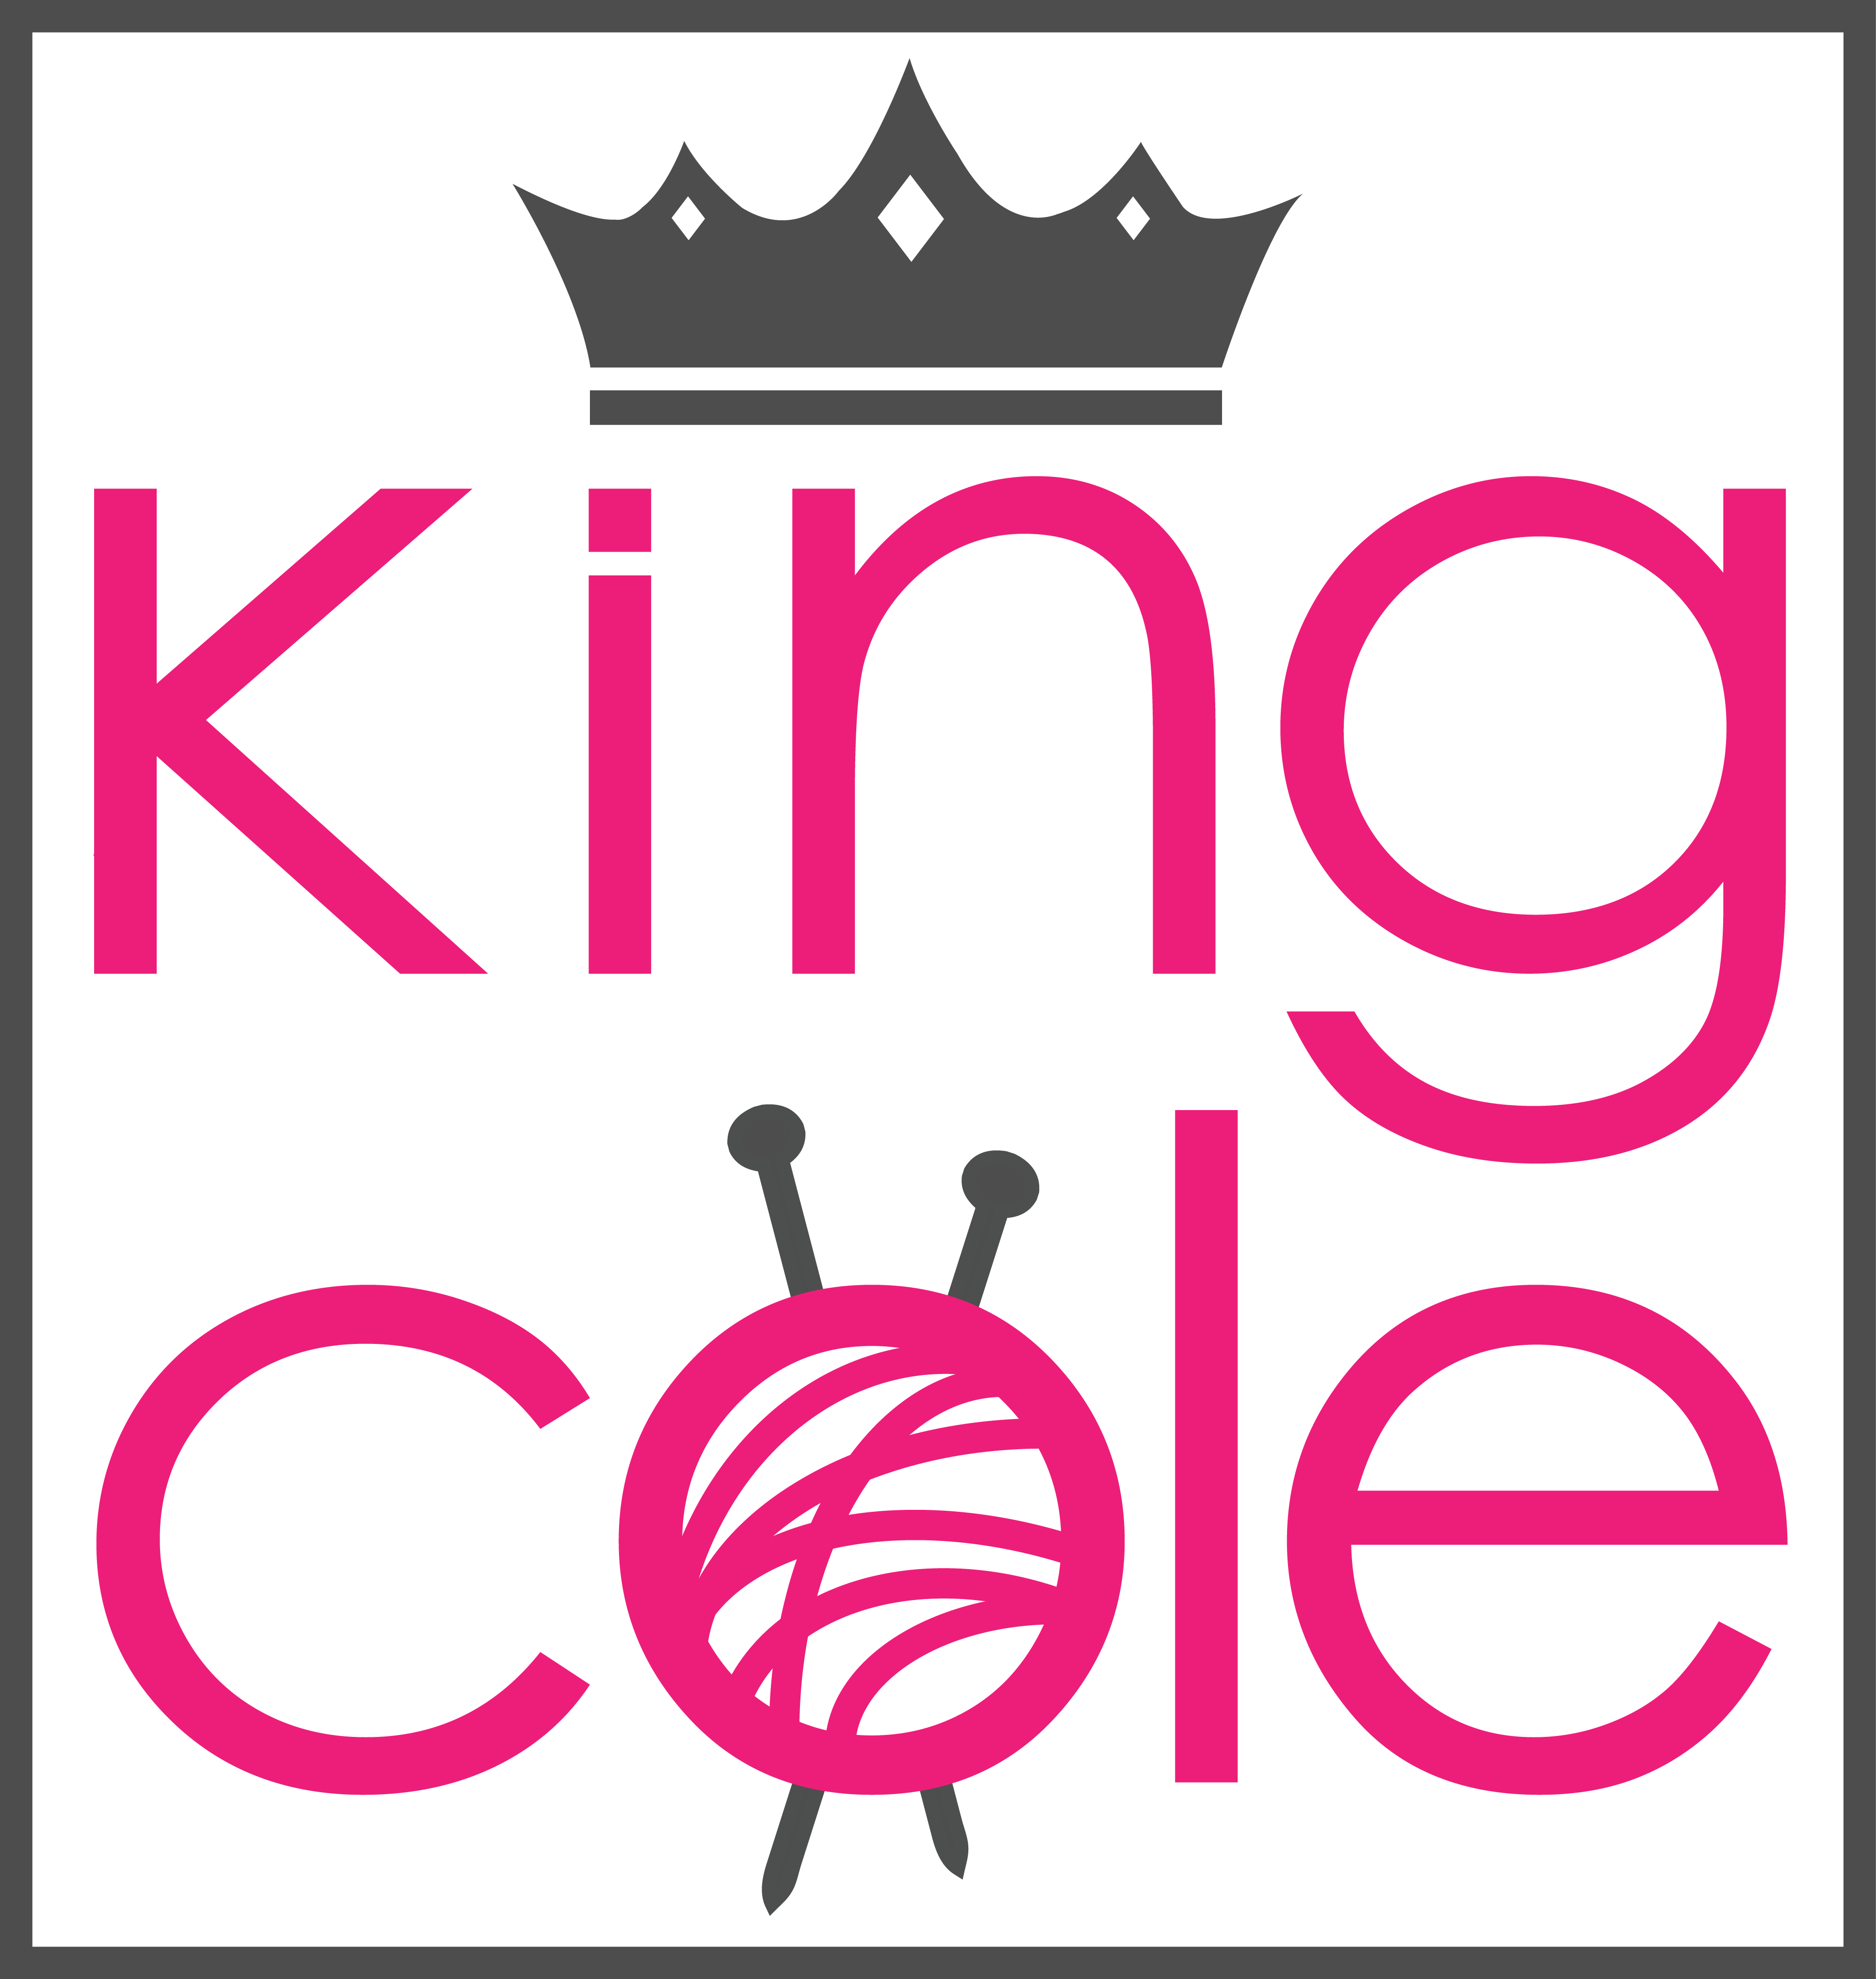 King Cole Ltd